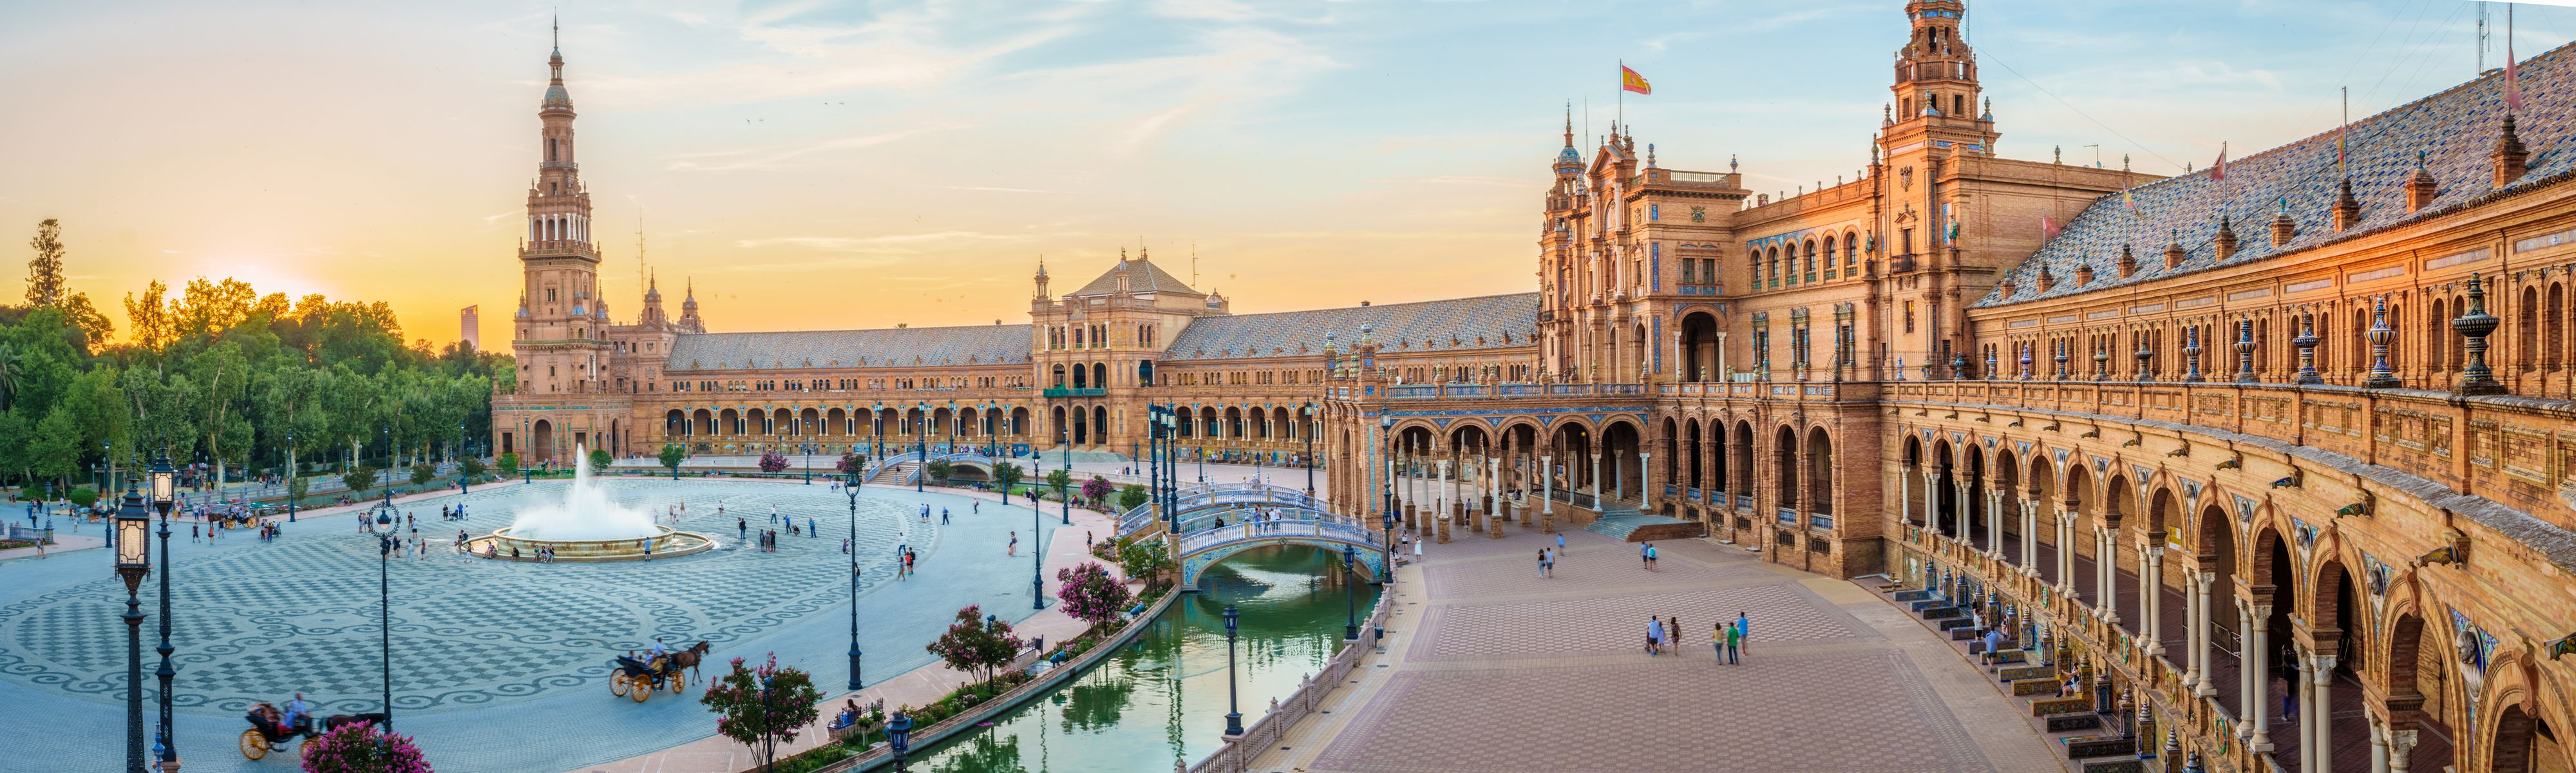 people walking around plaza de espana in seville